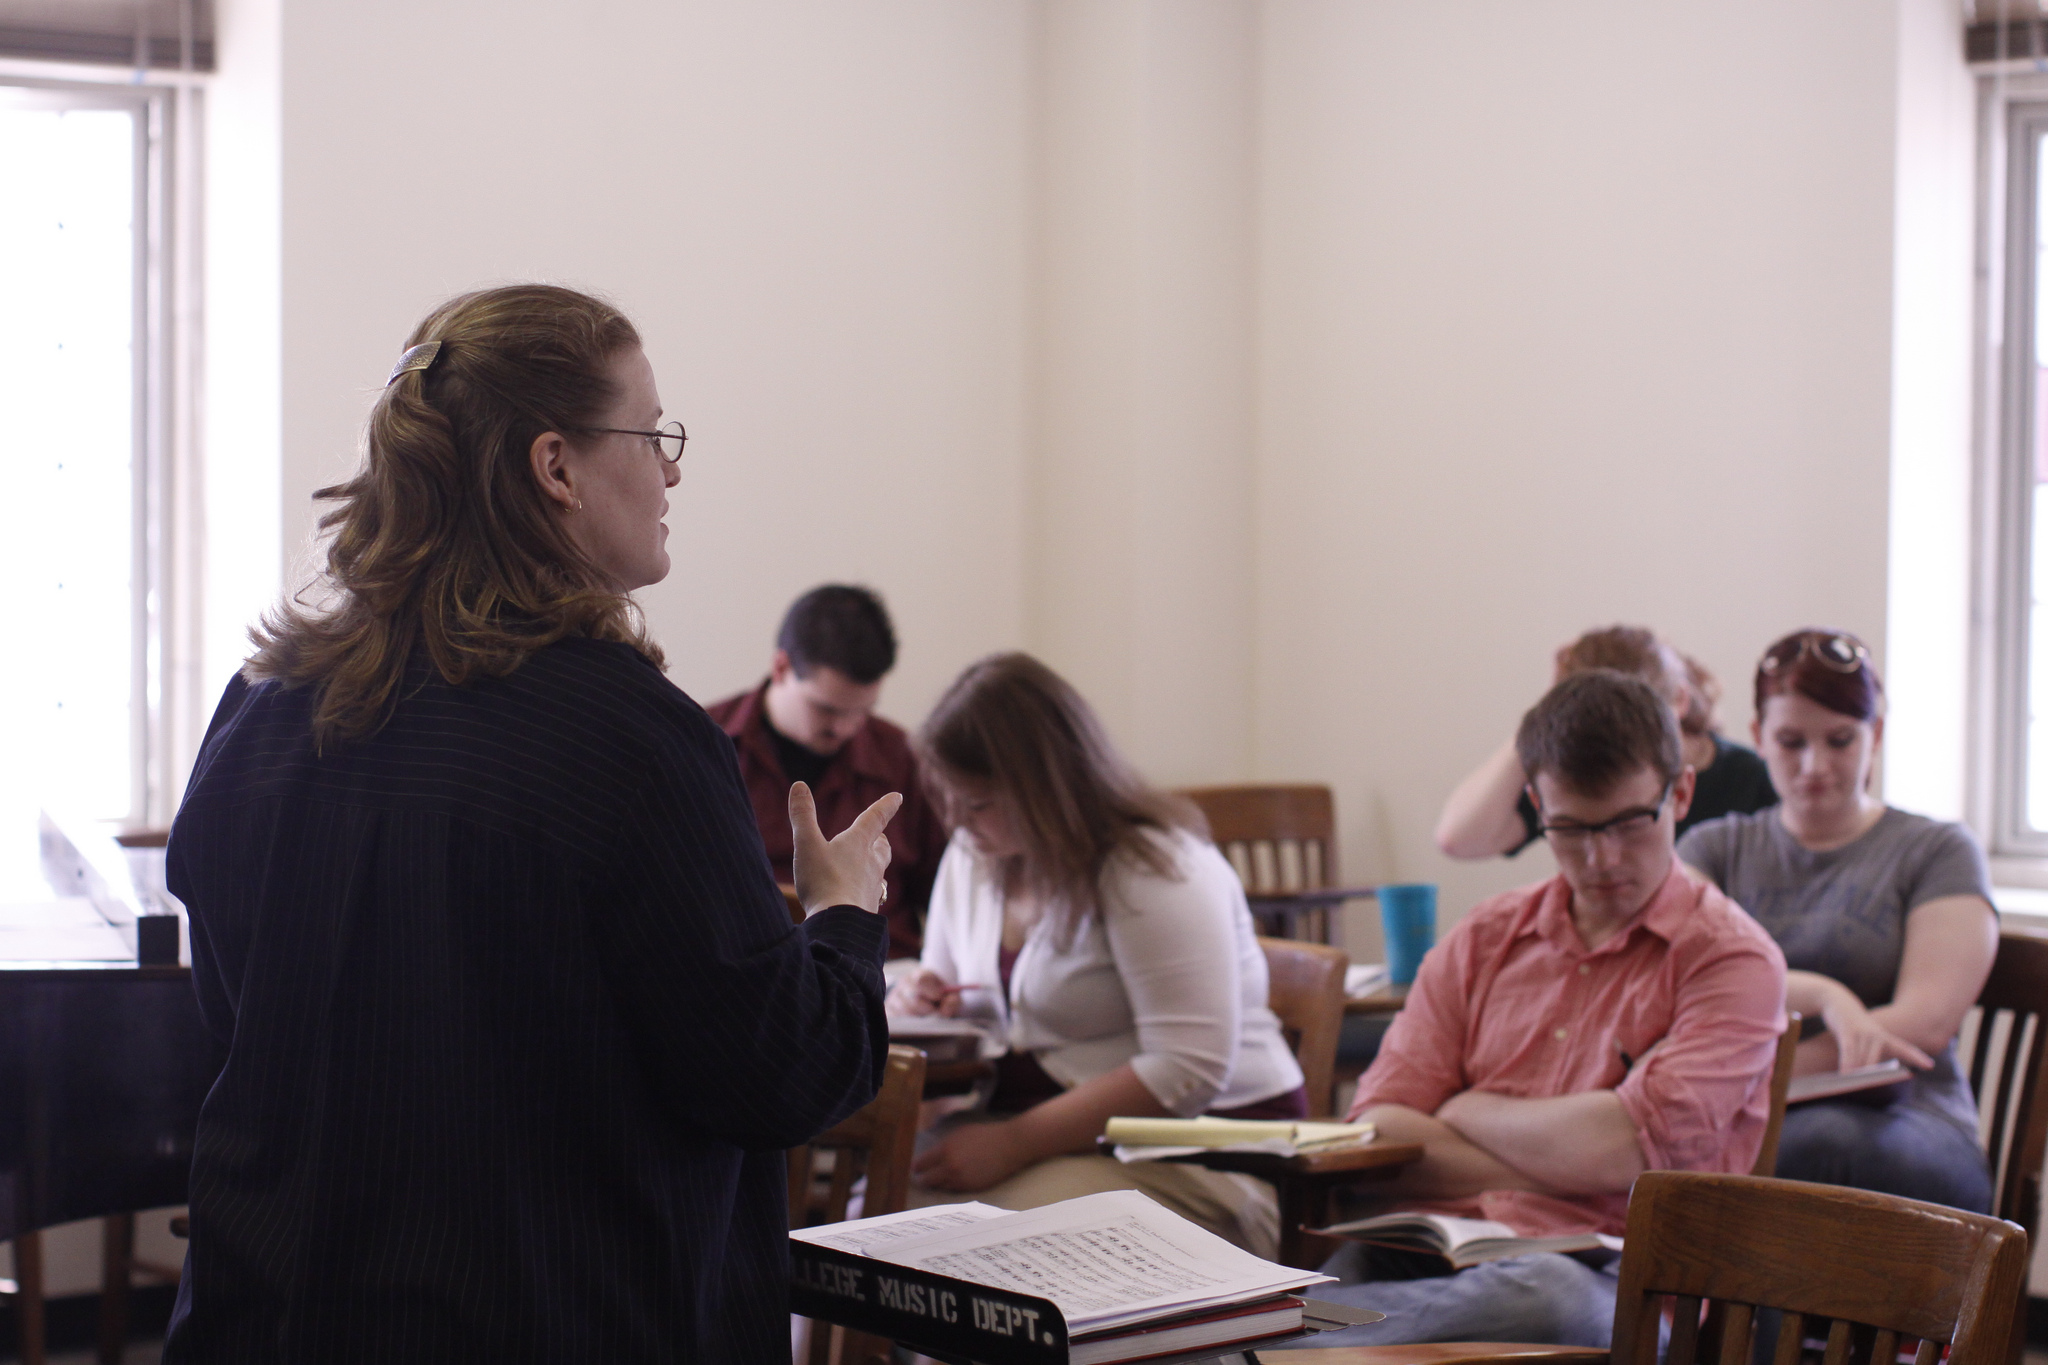 a professor and students in a classroom